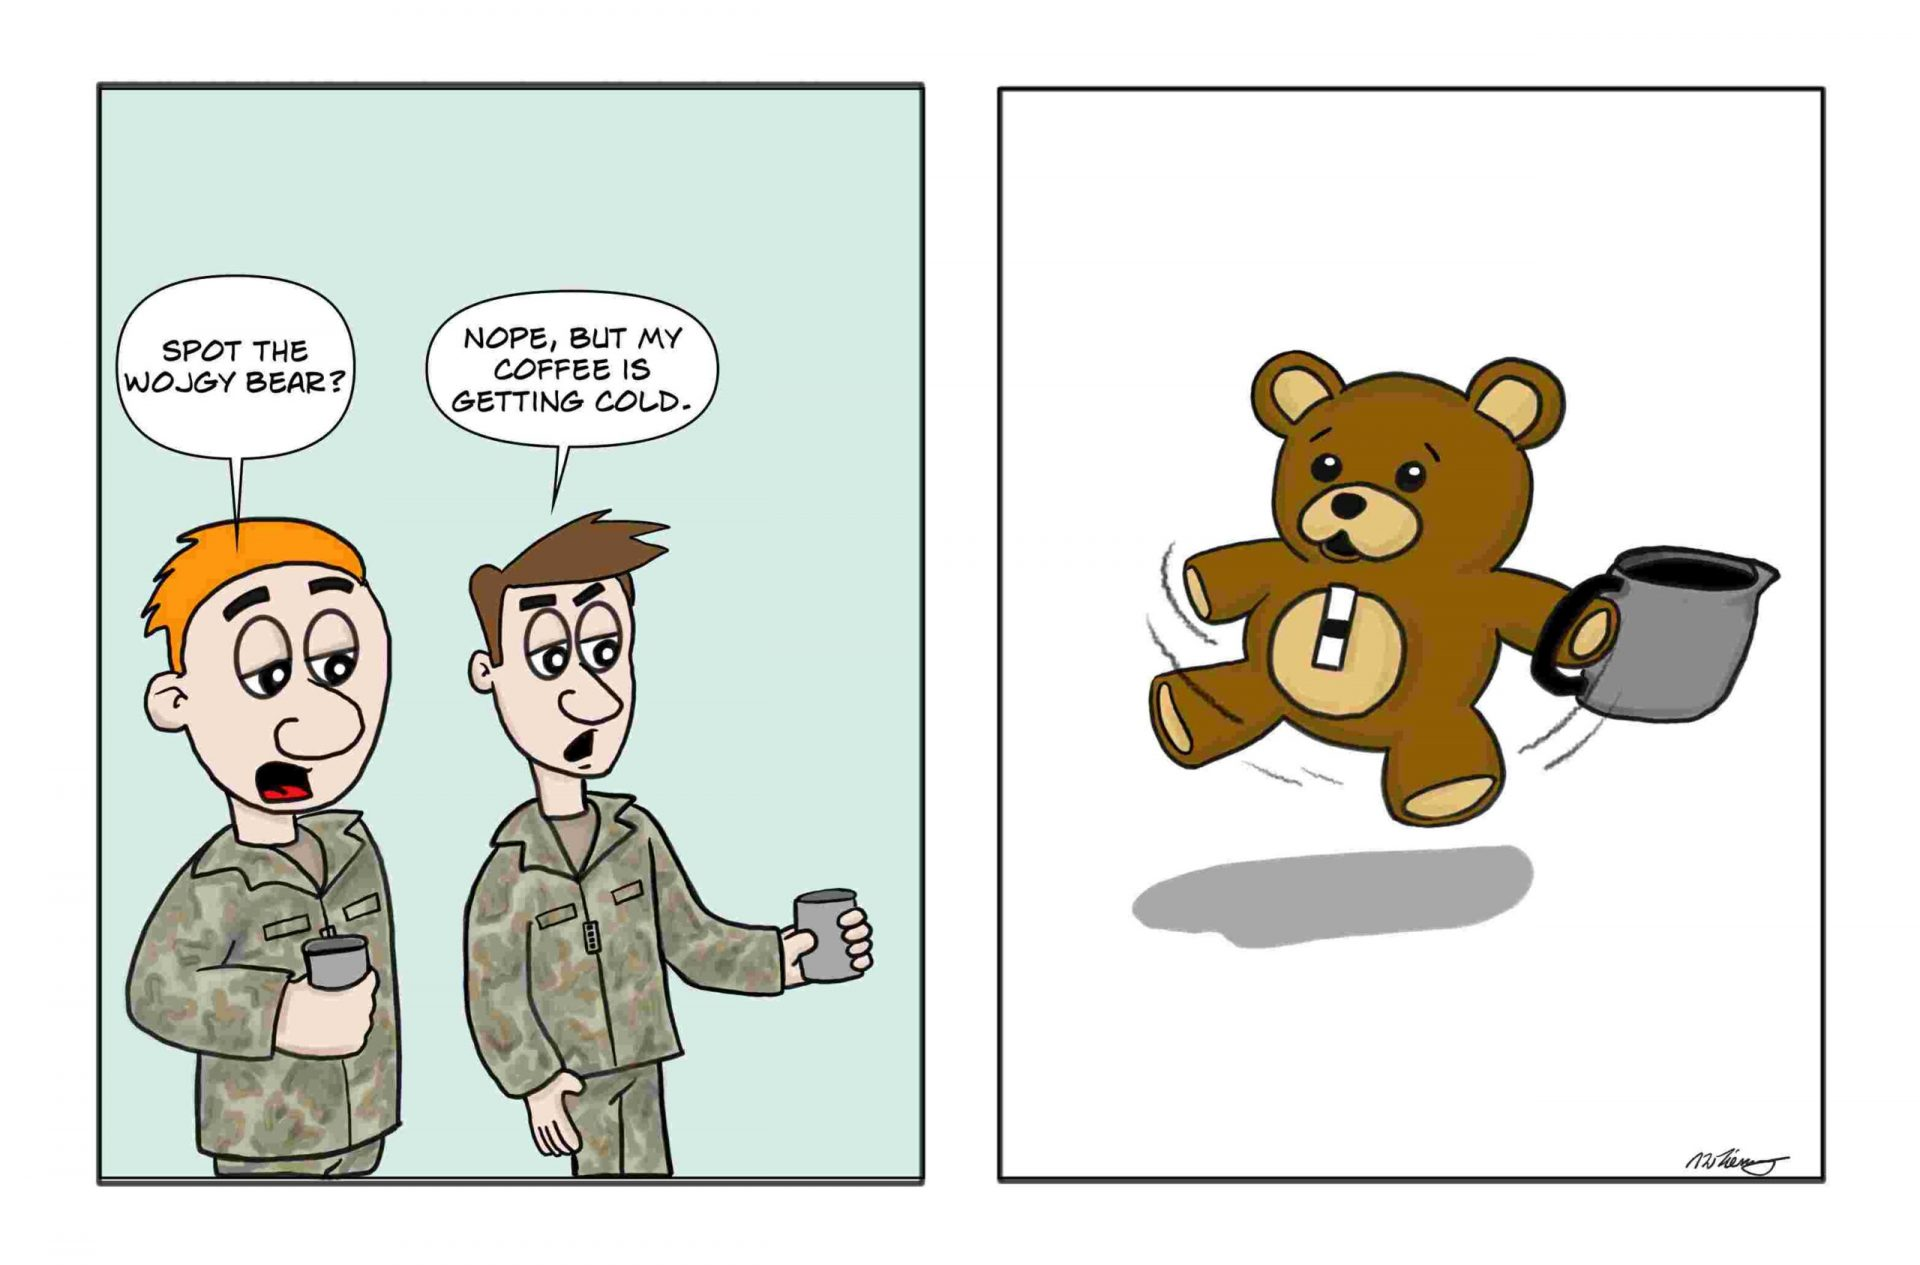 army warrant officer ones are often referred to as the WOJGY bear or wobbly one.